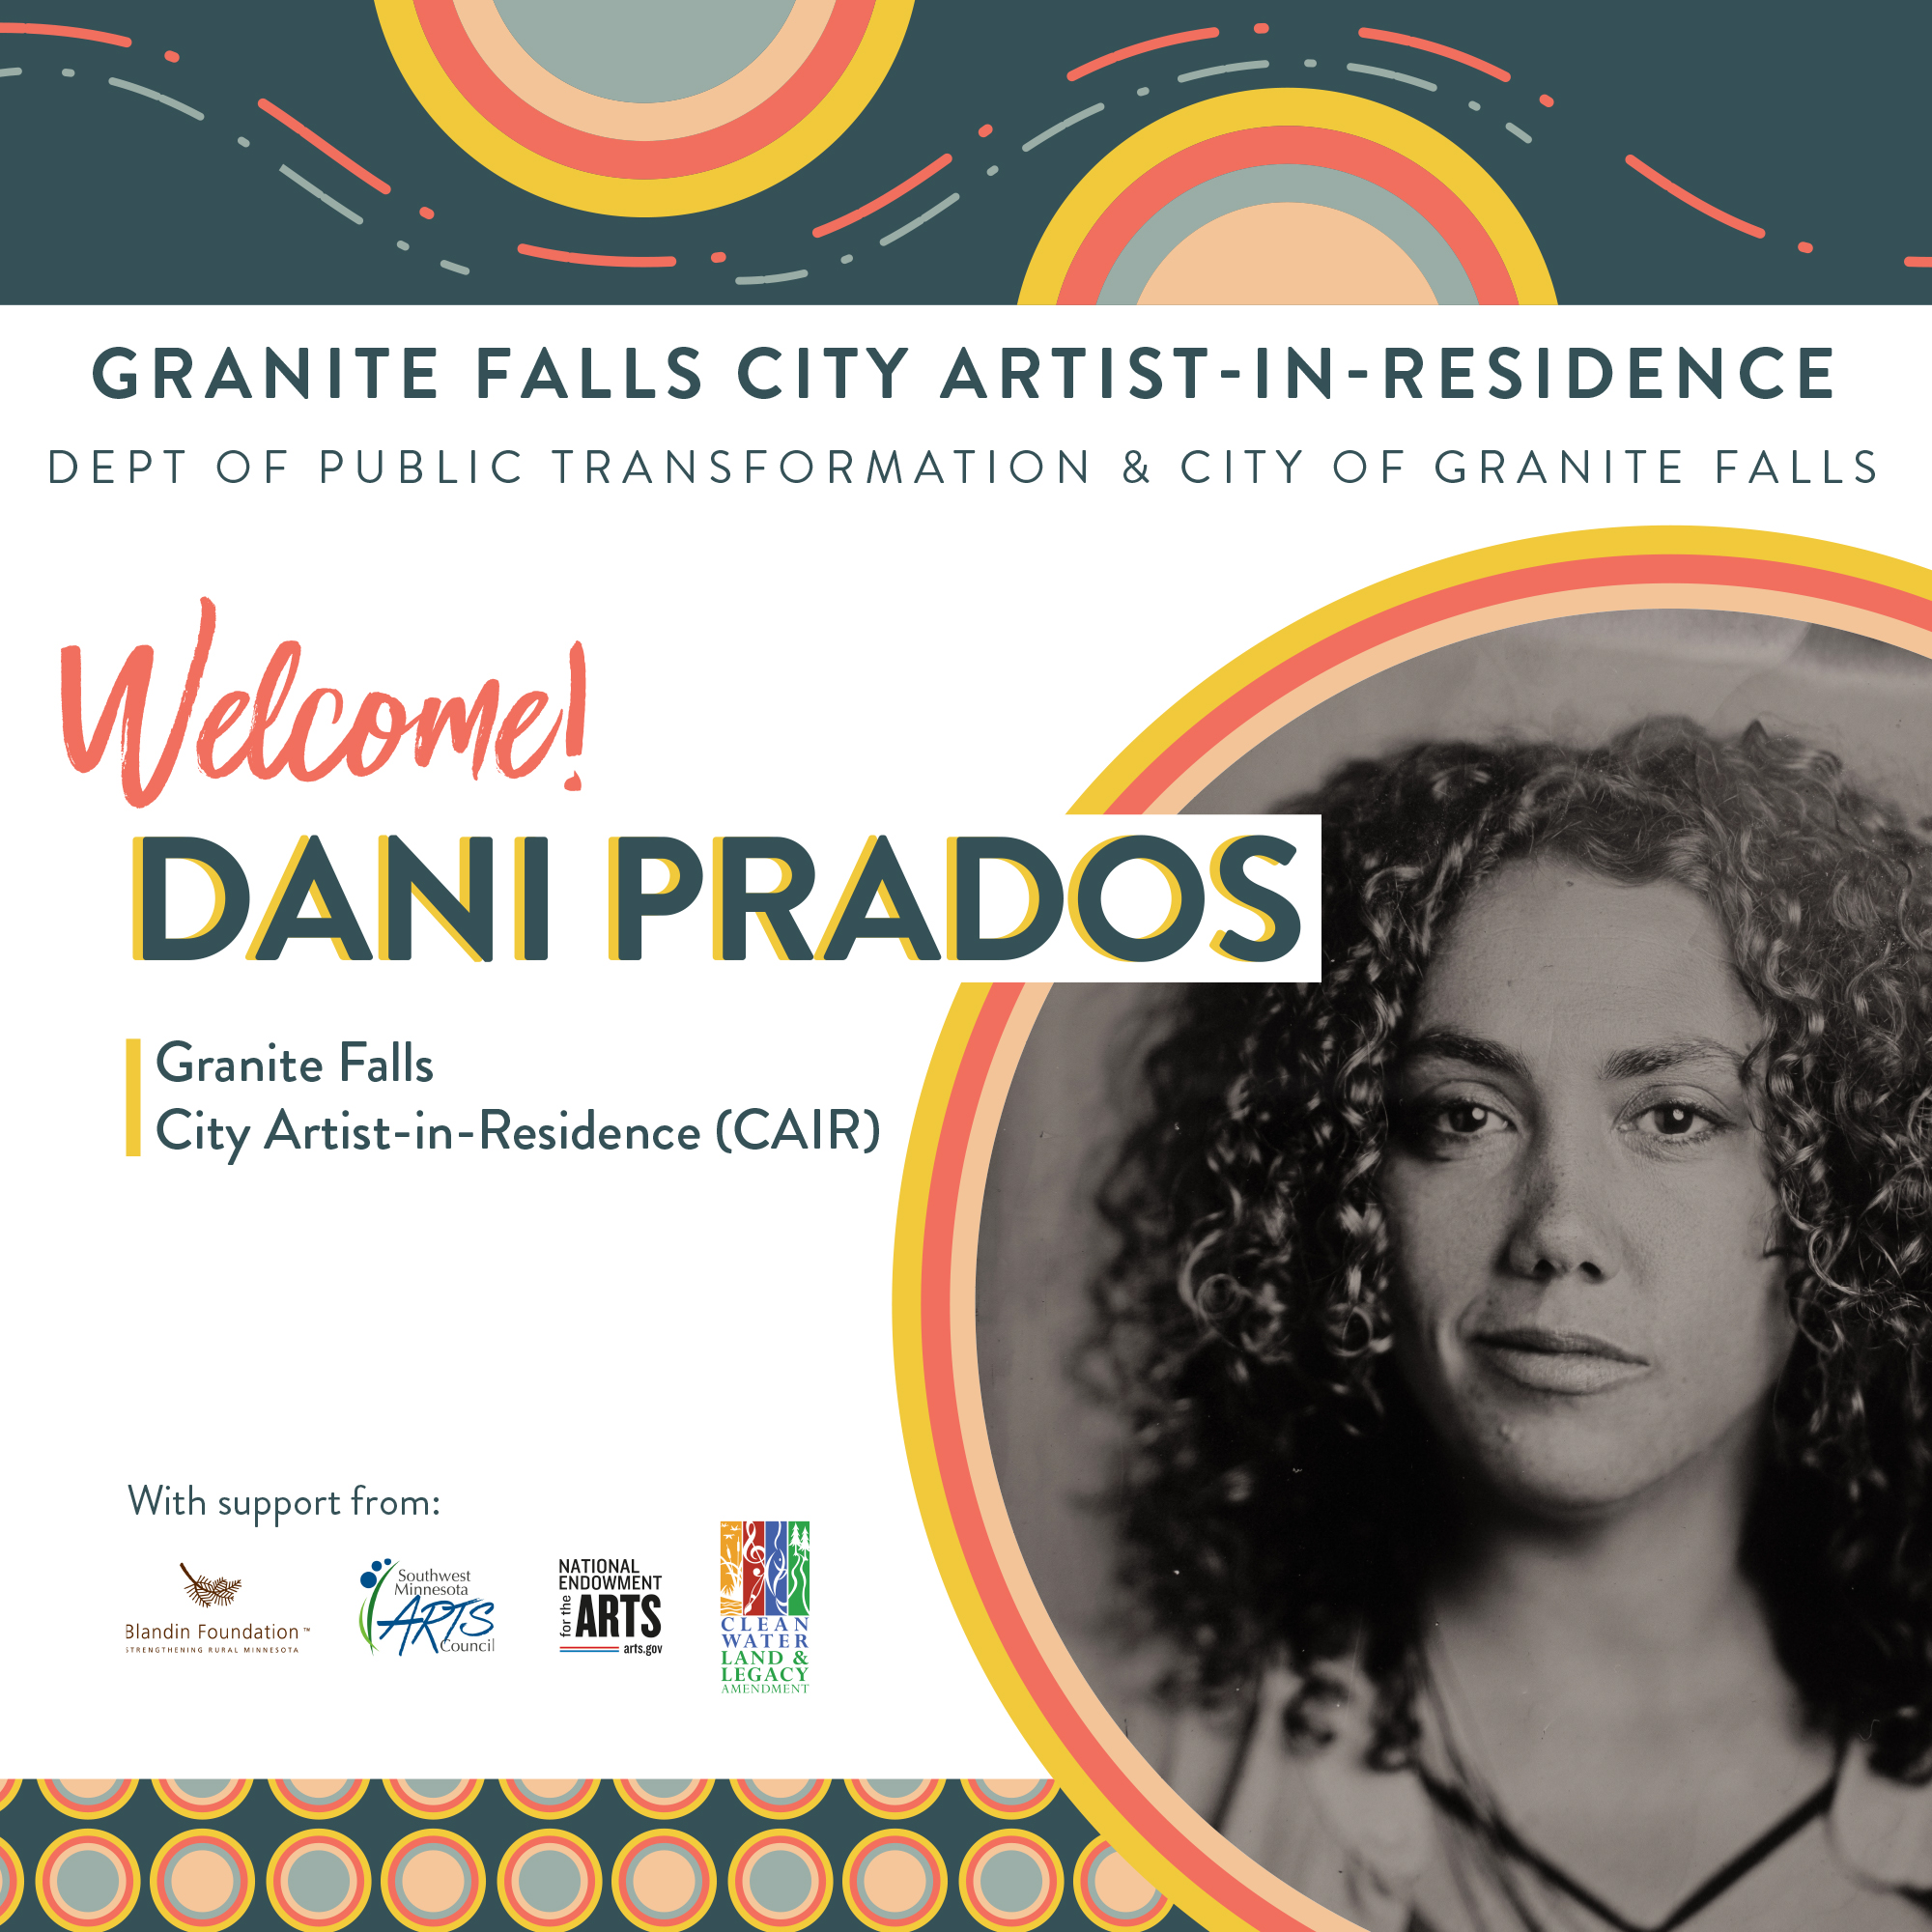 Text reads: Granite Falls City Artist-In-Residence, Dept of Public Transformation & City of Granite Falls. Welcome! Dani Prados. With support from Blandin Foundation, Southwest Minnesota Arts Council, National Endowment for the Arts and the MN Arts & Cultural Heritage Legacy Amendment. (Each has their own logo pictured). Photo of the Artist in black and white. Abstract circles and lines in various colors.